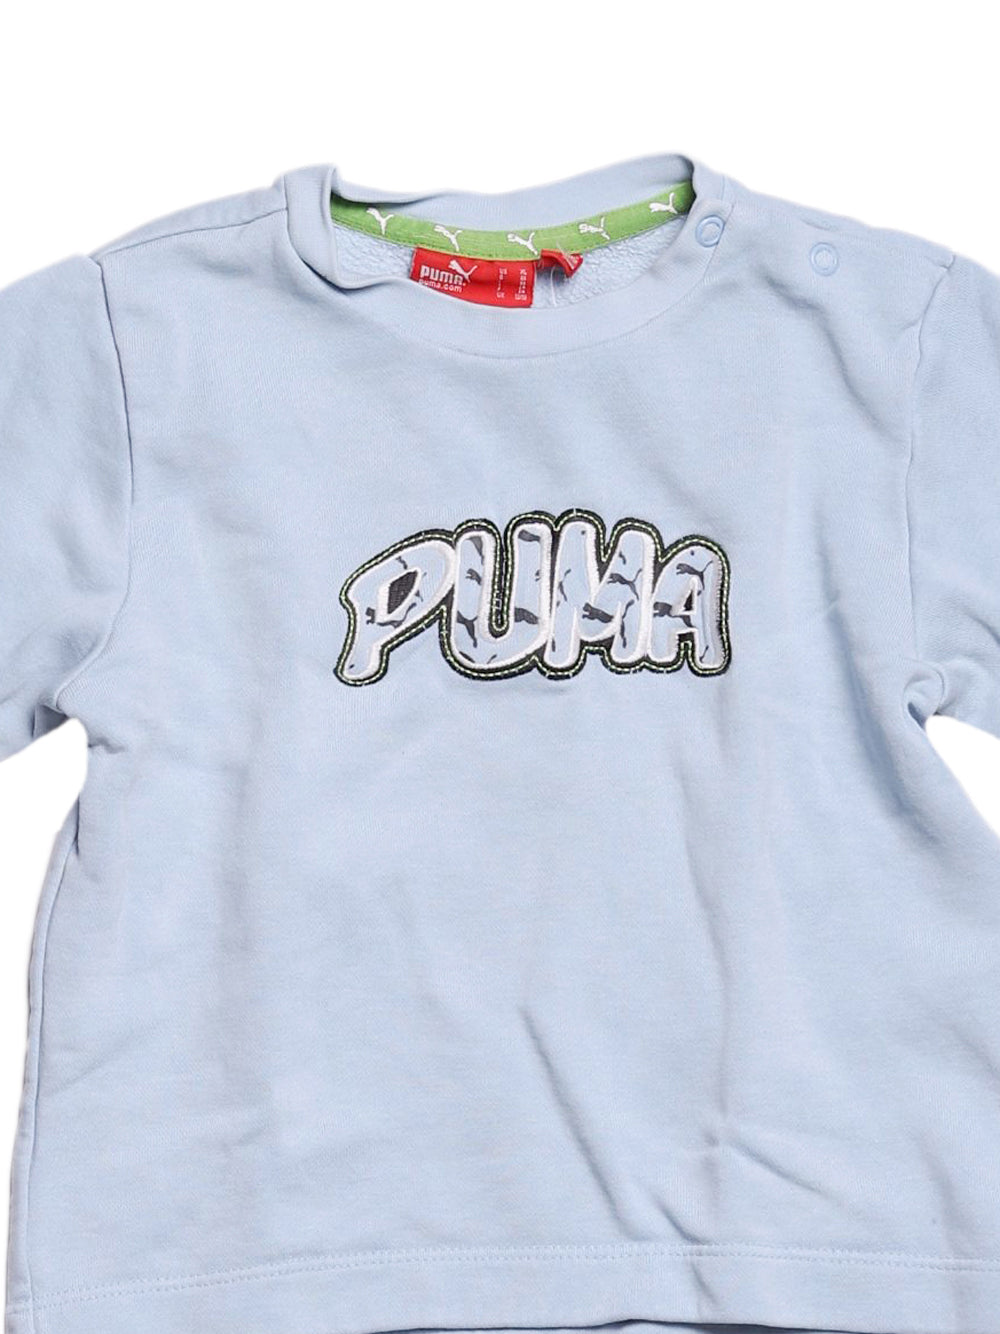 Detail photo of Preloved Puma Light-blue Boy's sweatshirt - size 2-3 yrs